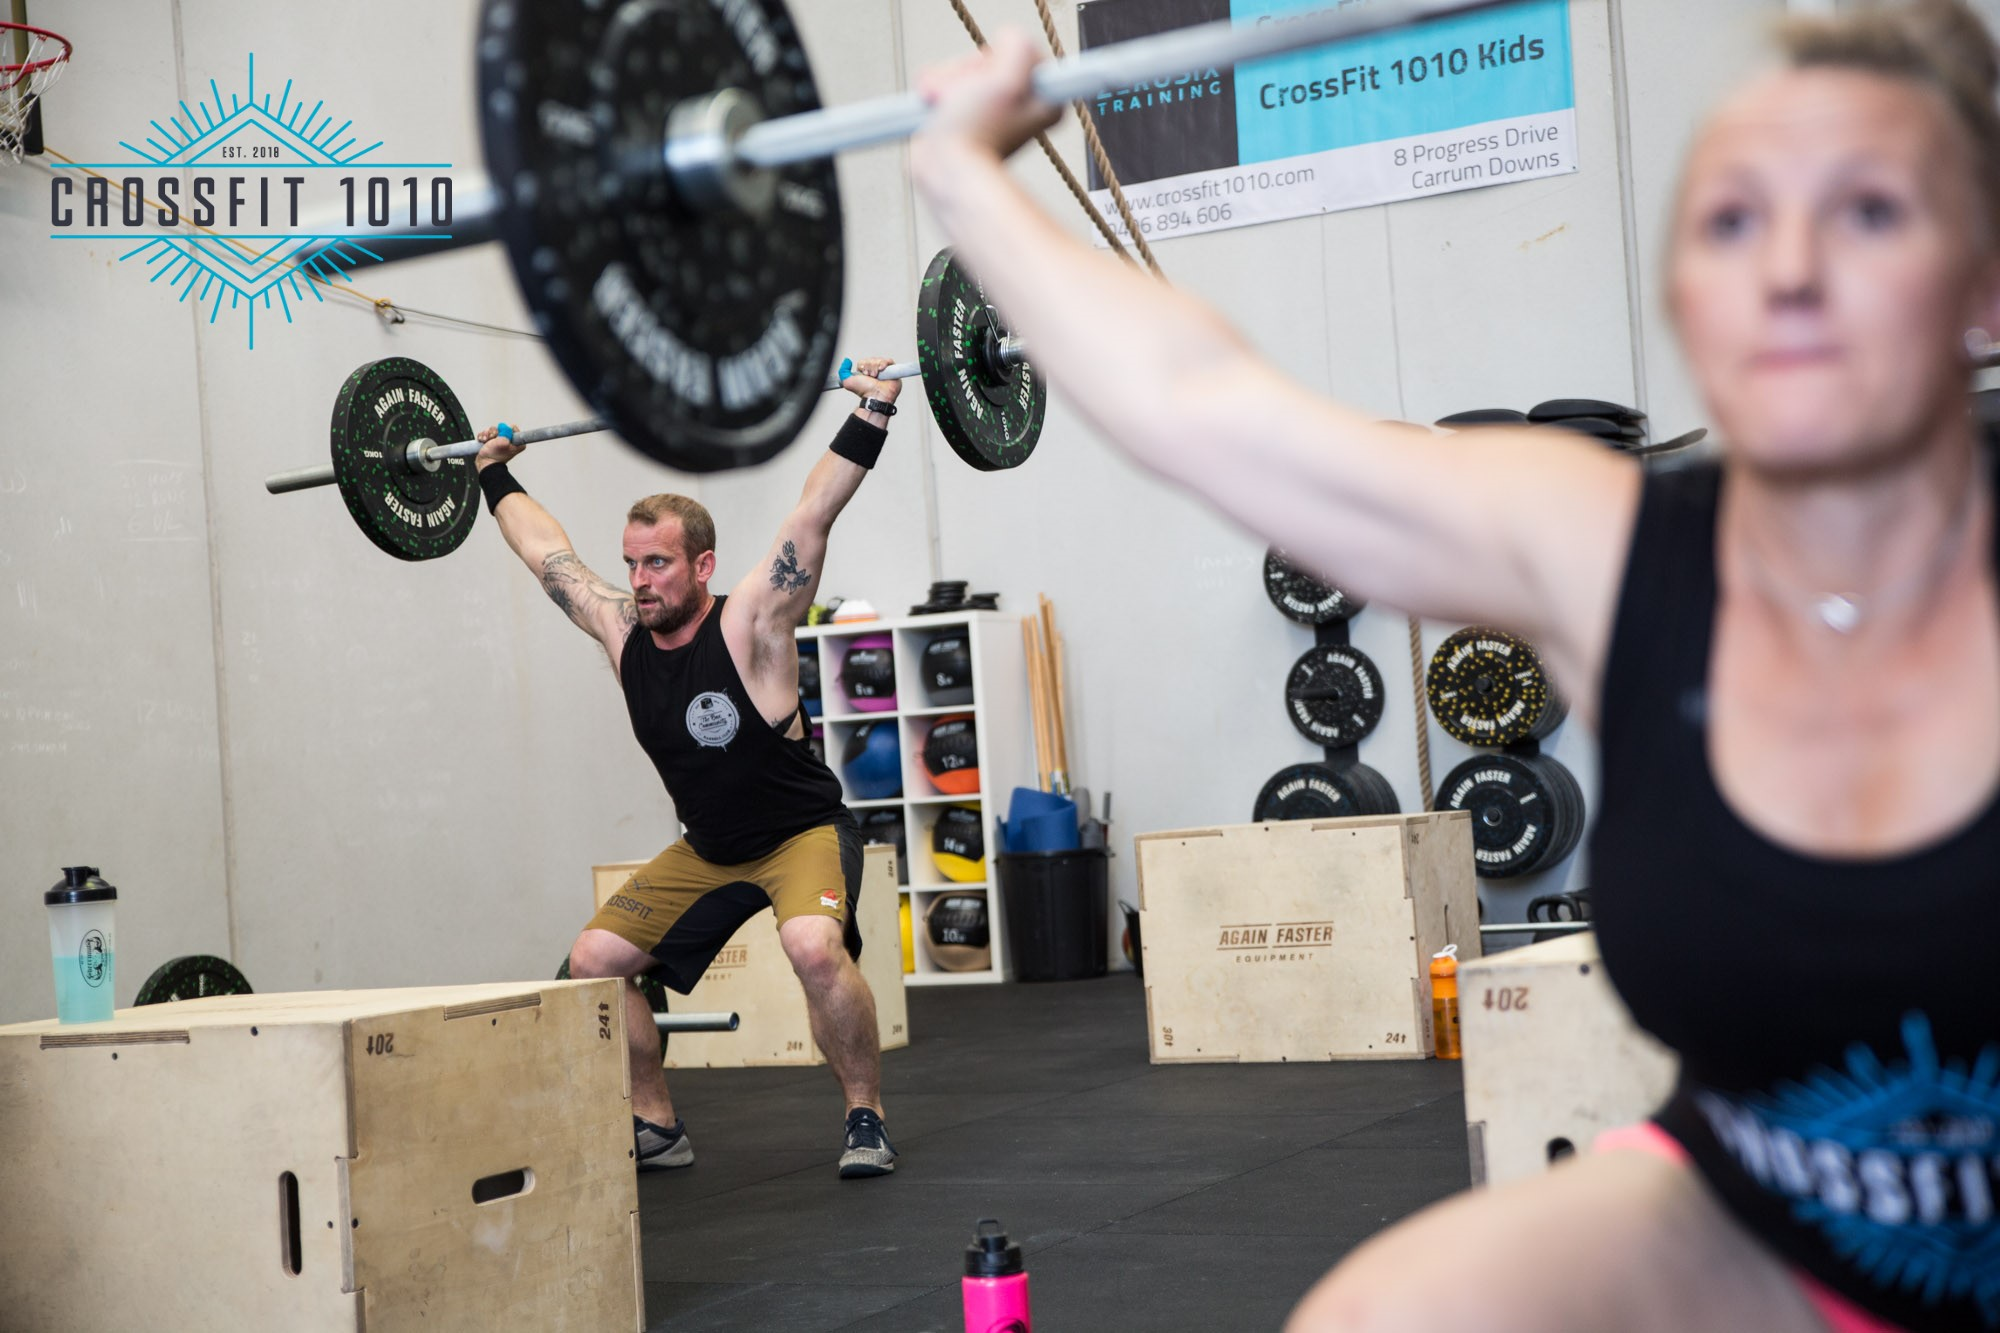 candice-thomason-crossfit-1010- feb-2019-55.jpg